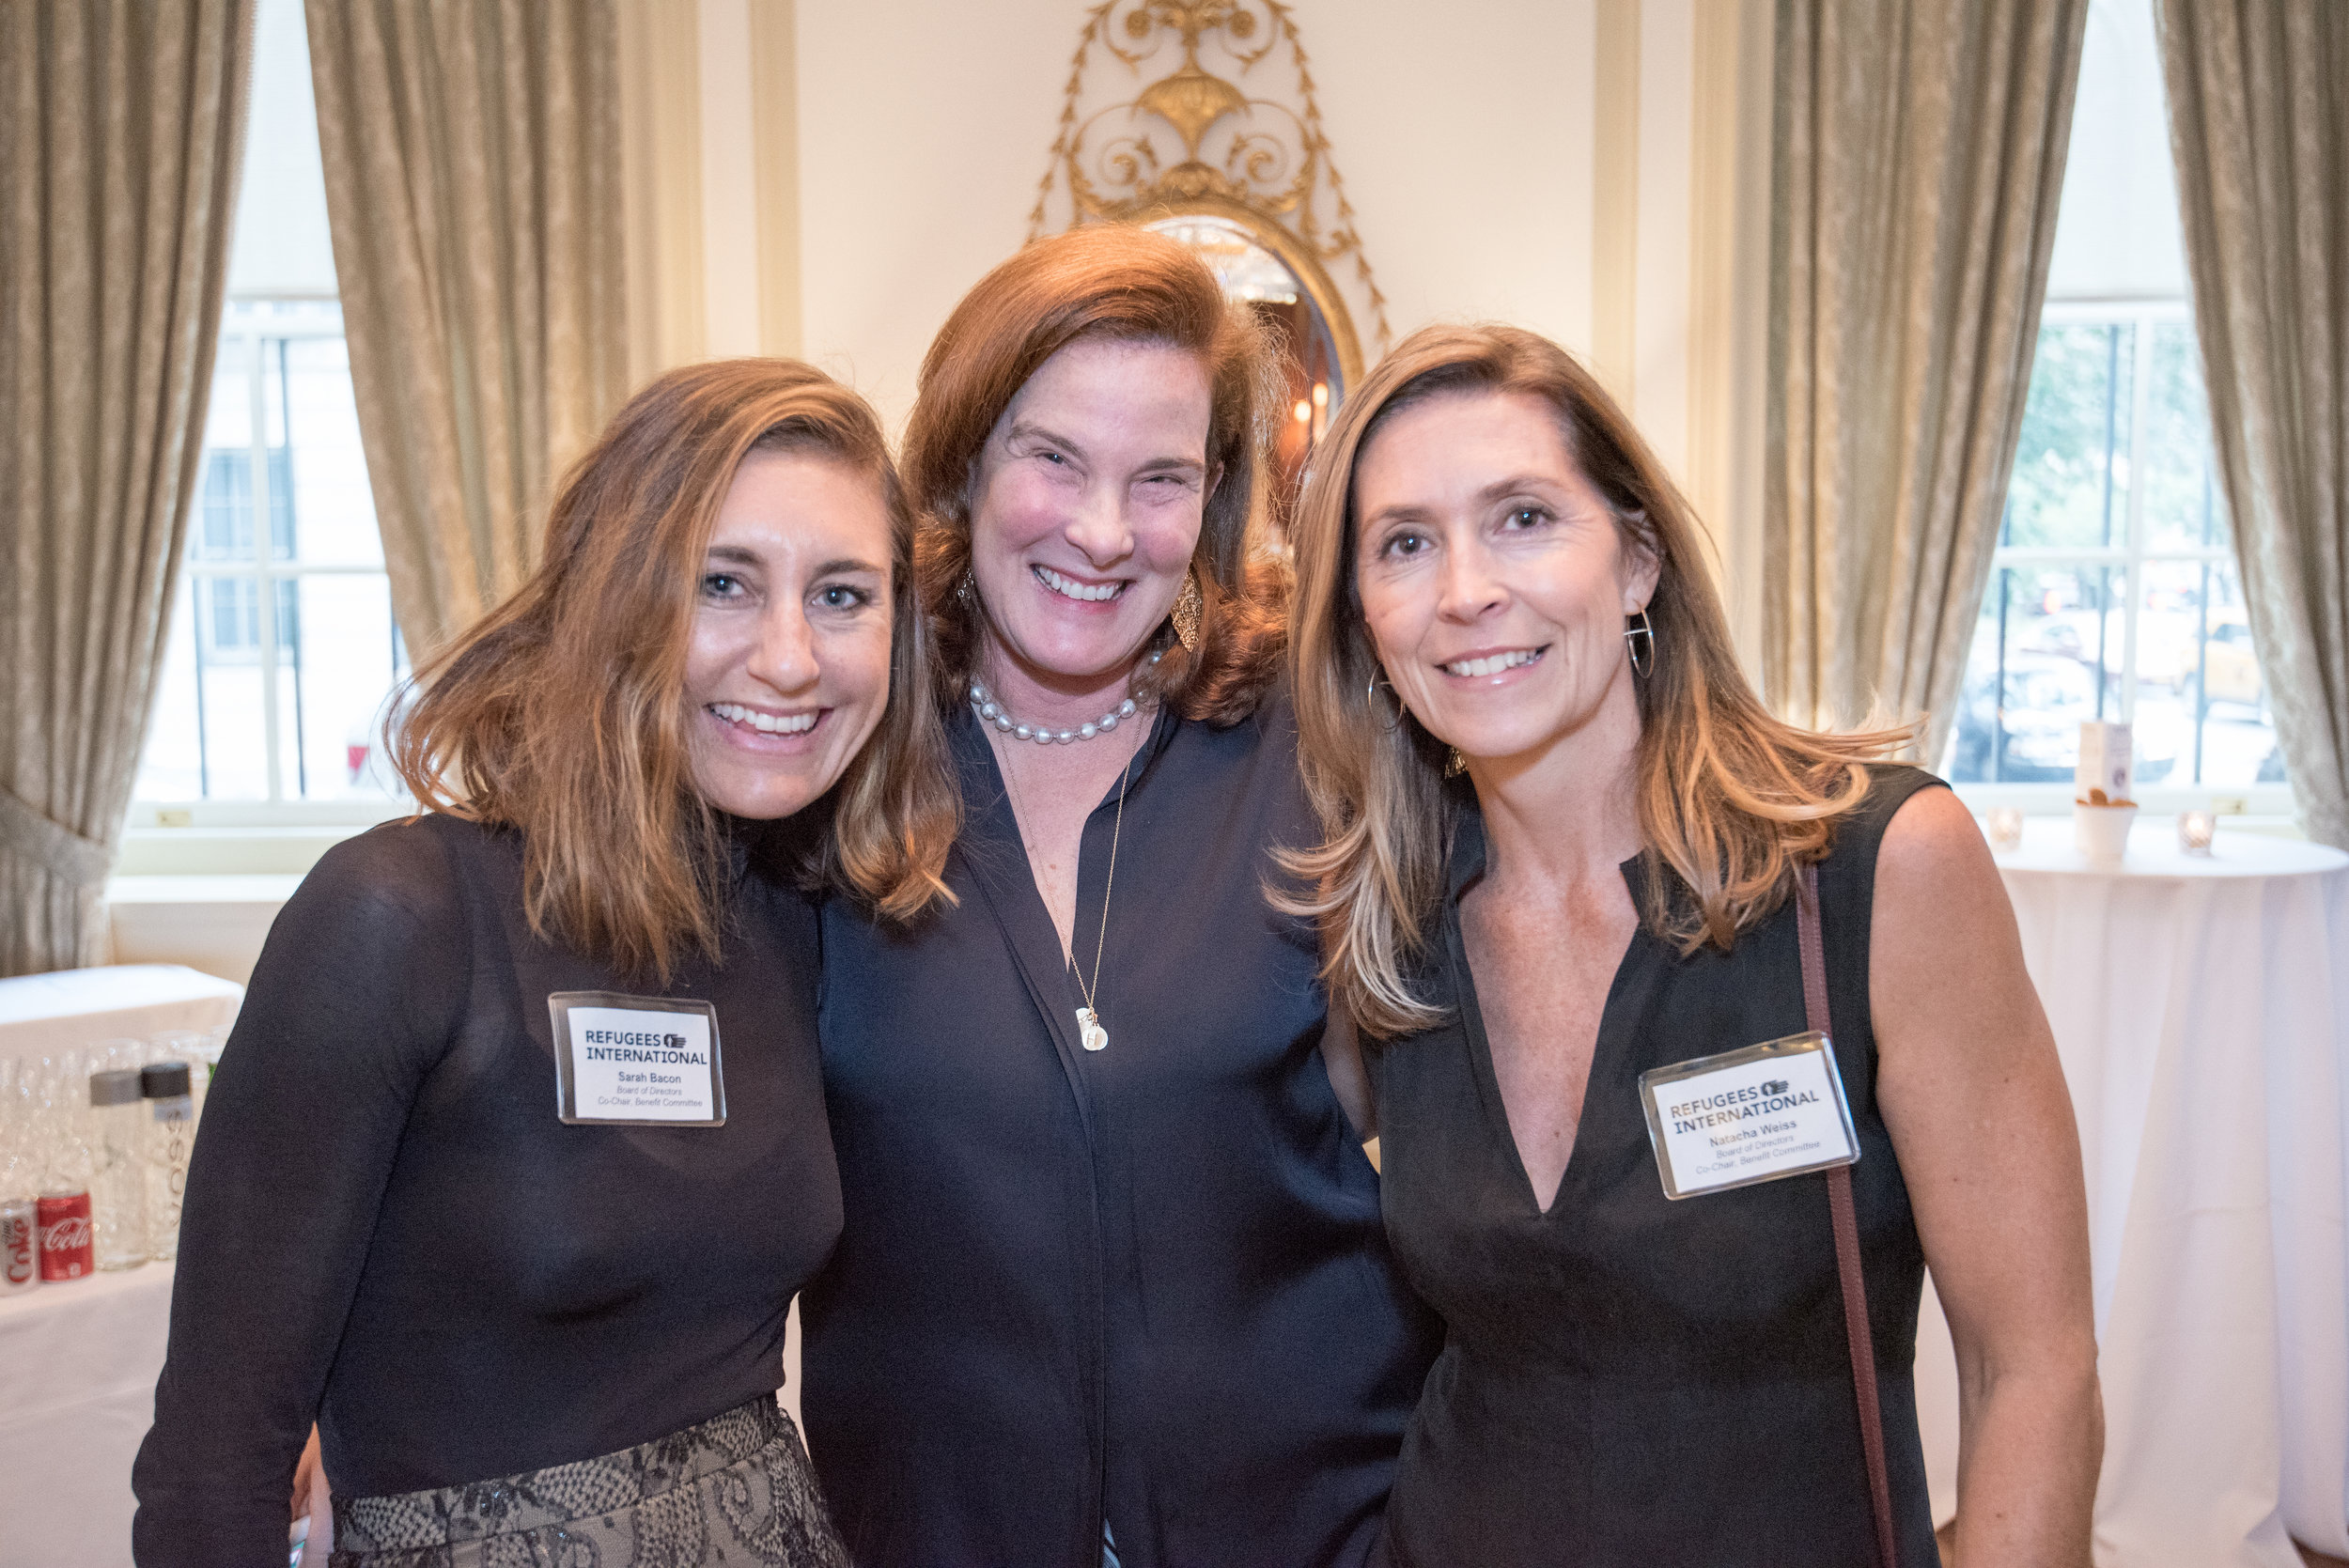 Sarah Bacon, Caroline Netchvolodoff, and Natasha Weiss served as the event's co-chairs.